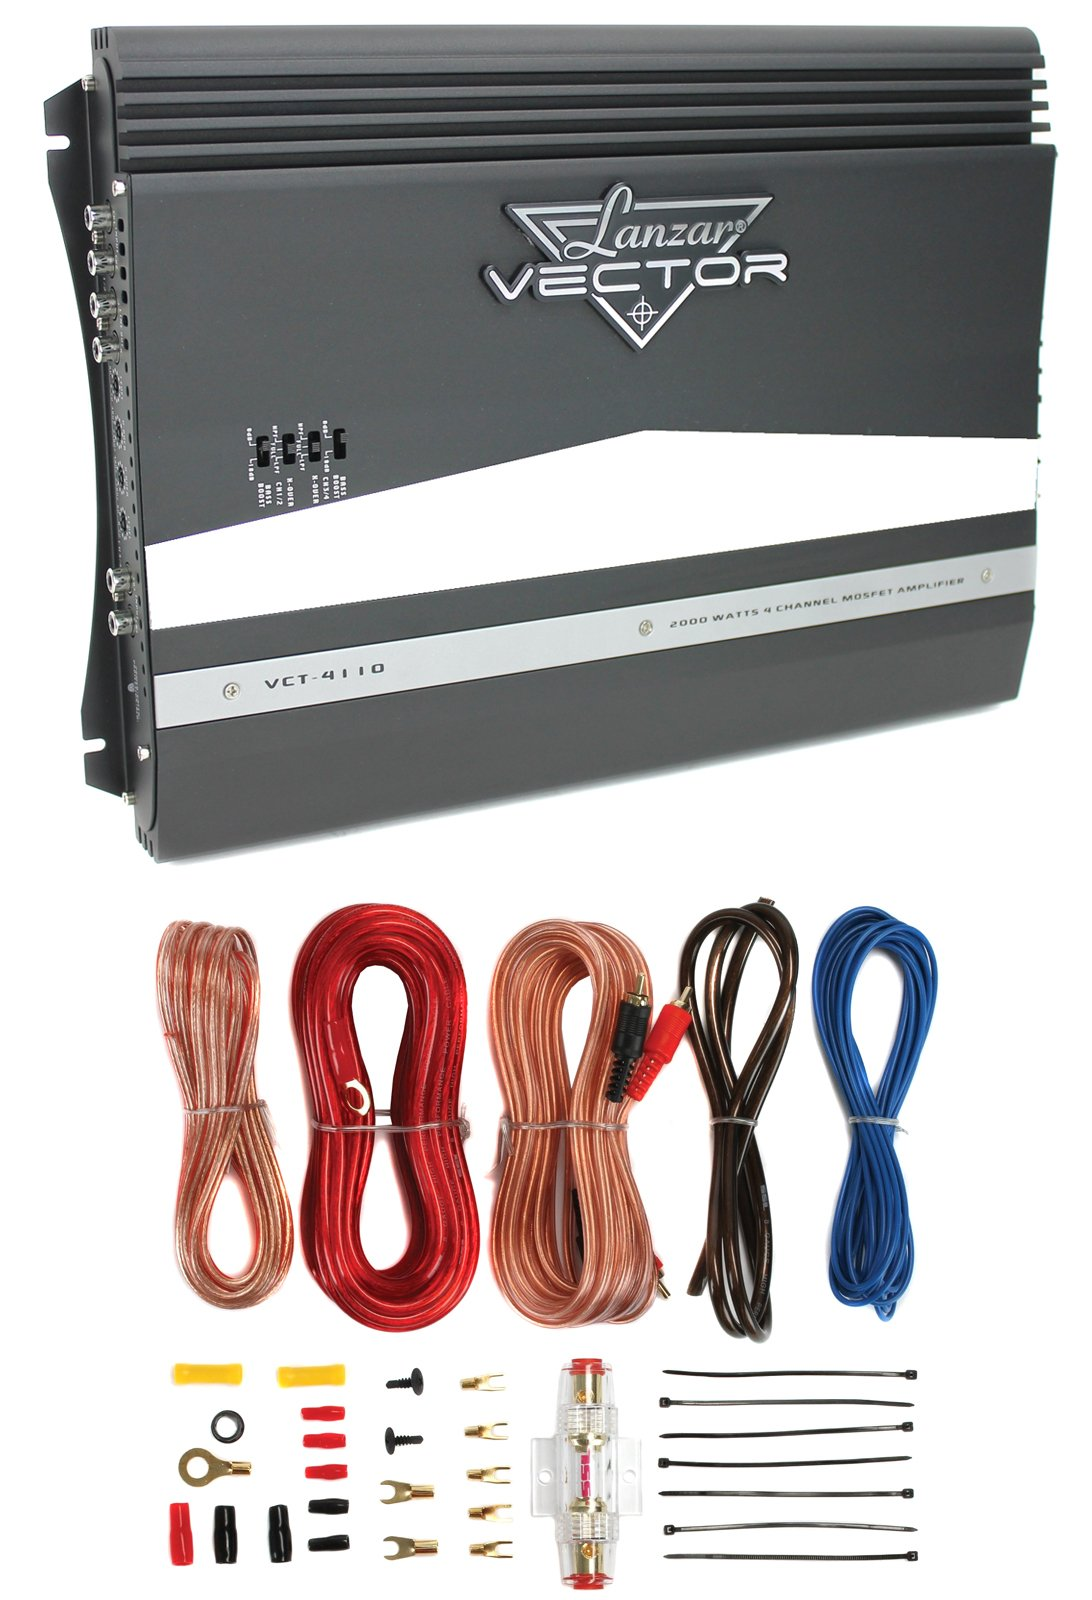 New Lanzar VCT4110 2000W 4-Channel Car Audio Amplifier Amp + 8 Gauge Amp Kit